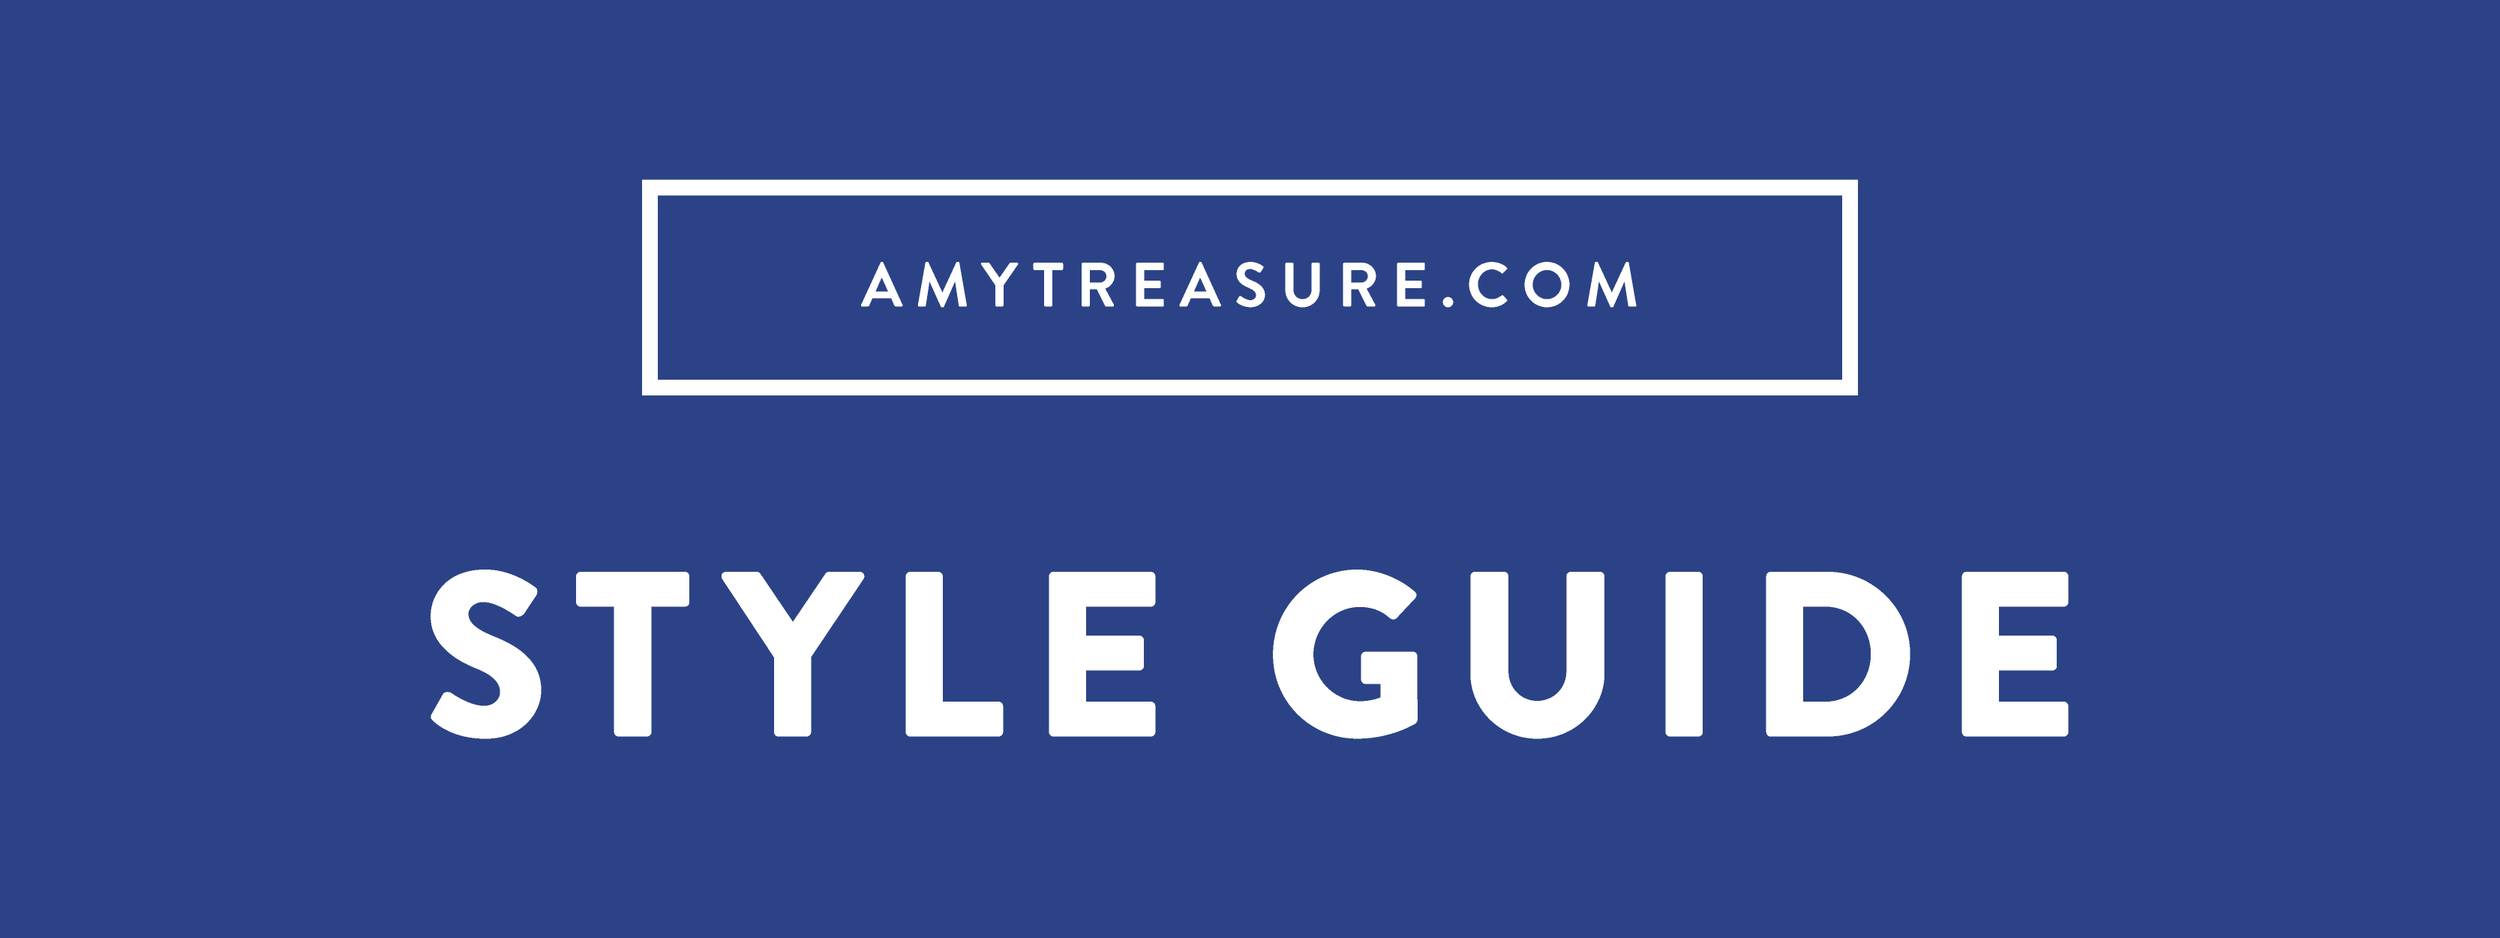 Style Guide Header.png